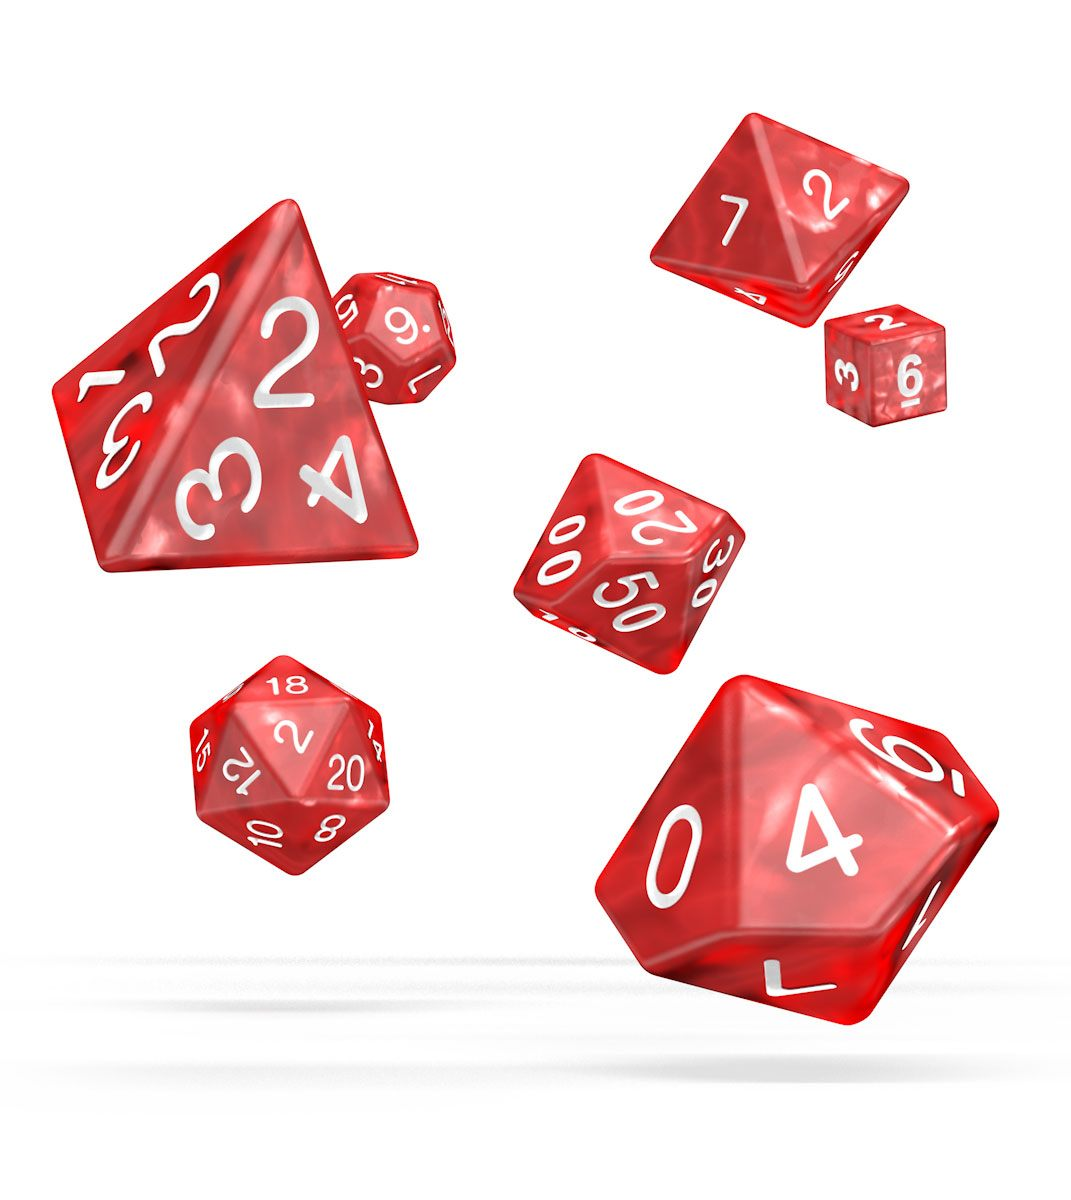 Kocka Set (7) - Oakie Doakie Dice RPG Set Marble - Red